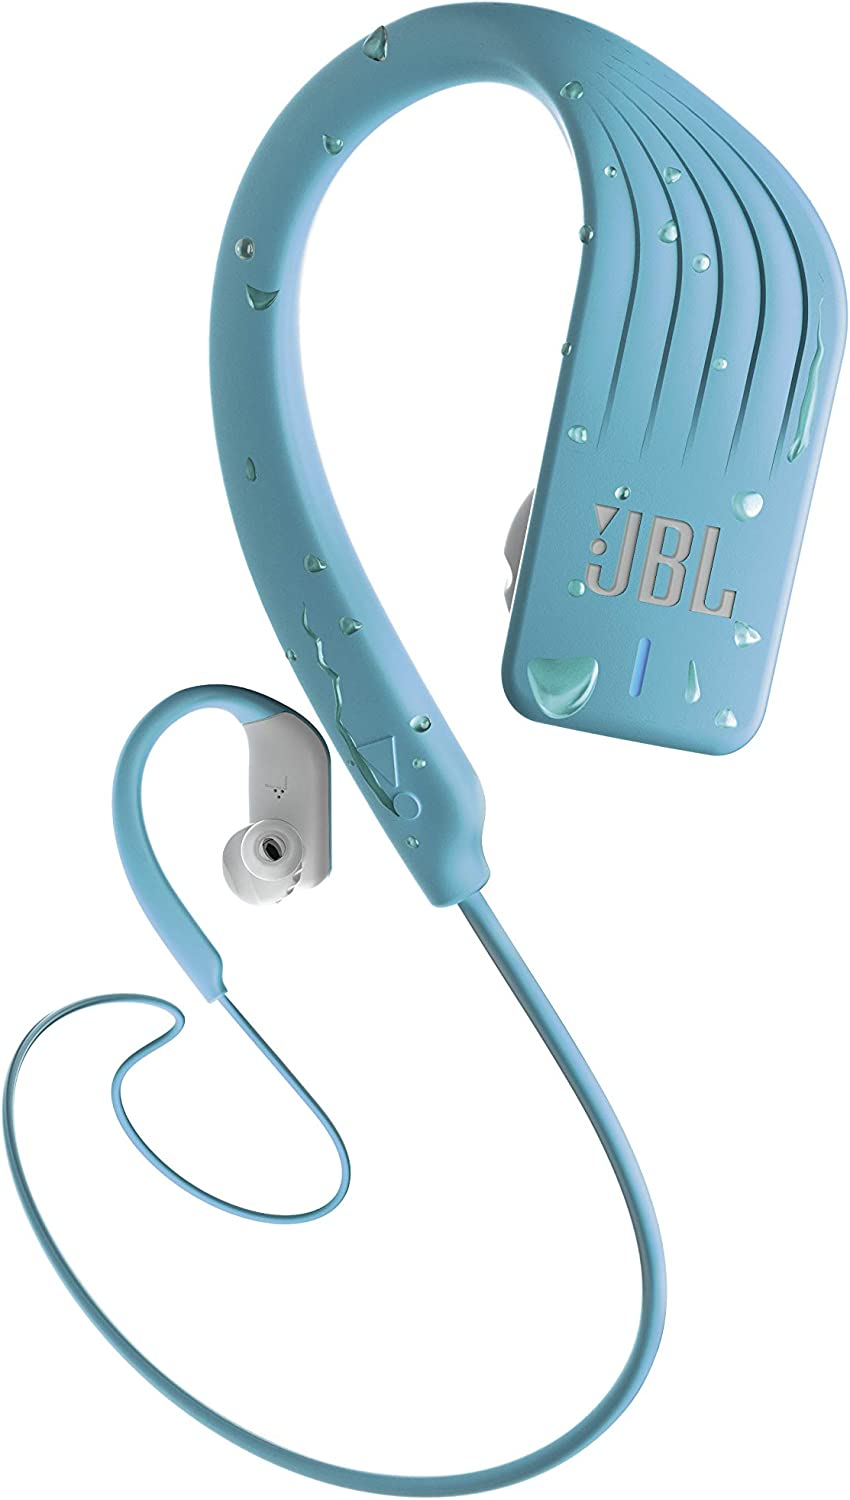 JBL ENDURANCE SPRINT - Wireless headphones, bluetooth sport earphones with microphone, Waterproof, up to 8 hours battery, quick charge, works with Android and Apple iOS (Teal)